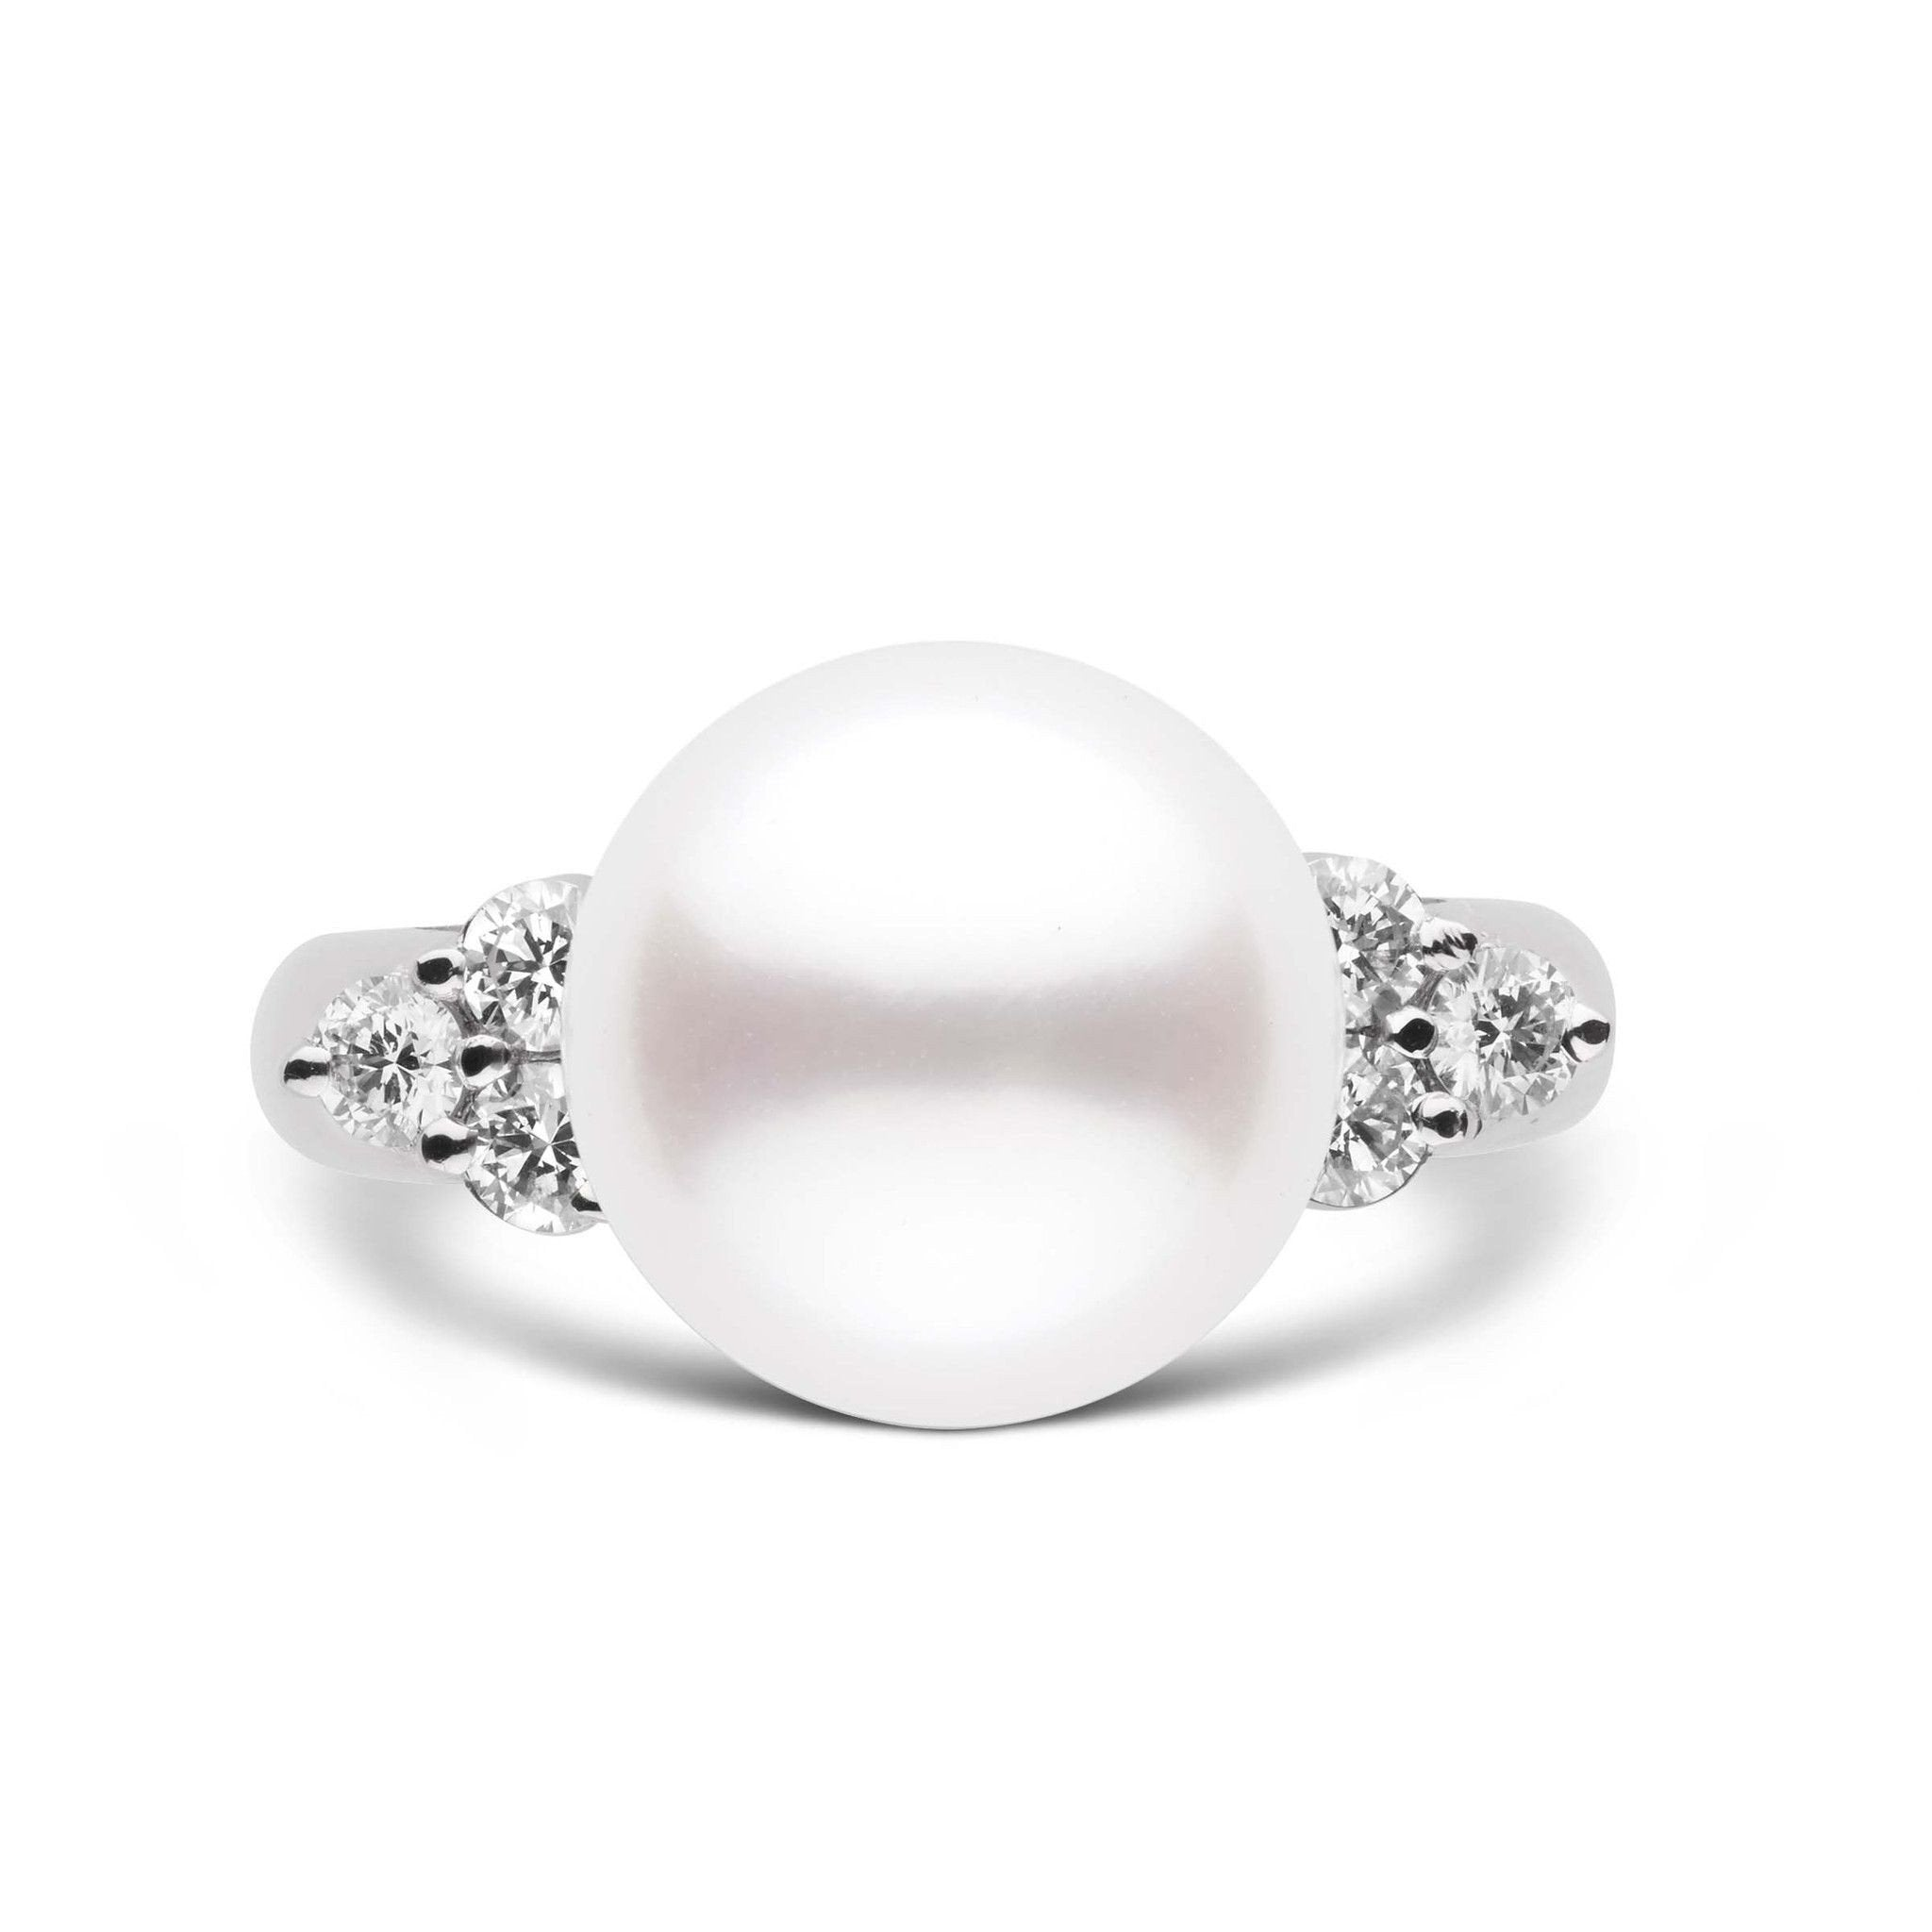 Always Collection White 11.0-12.0 mm South Sea Pearl Ring 18K